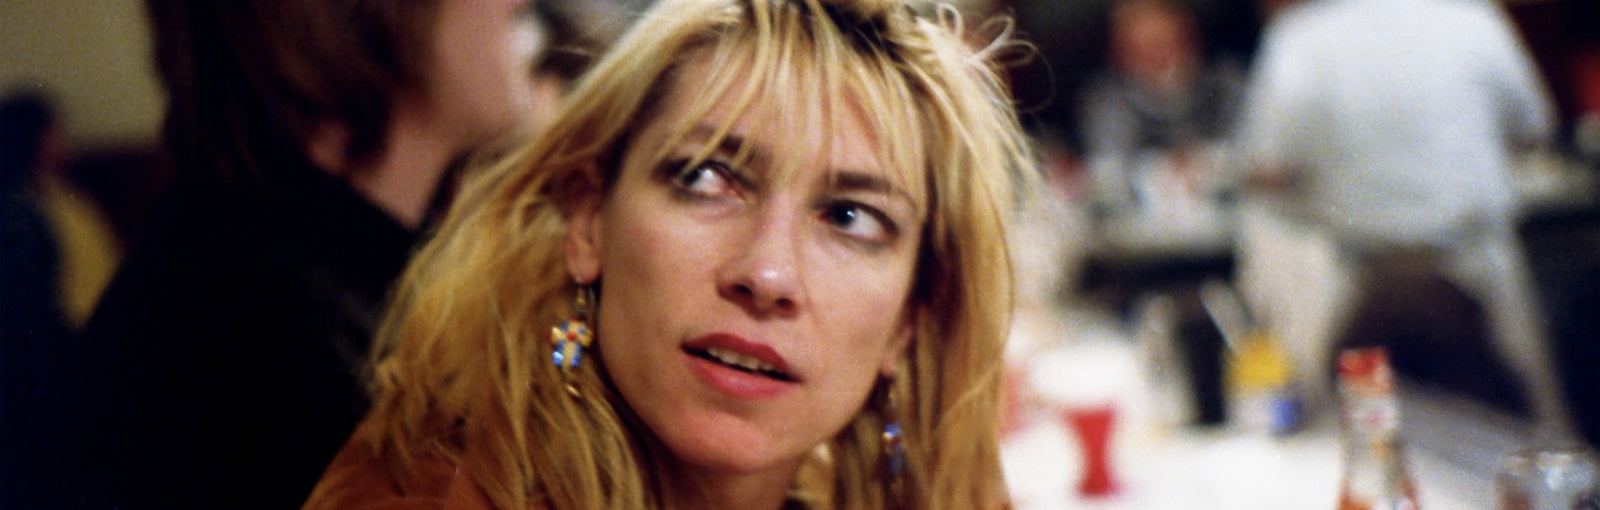 KIM GORDON: JUST A GIRL IN A BAND